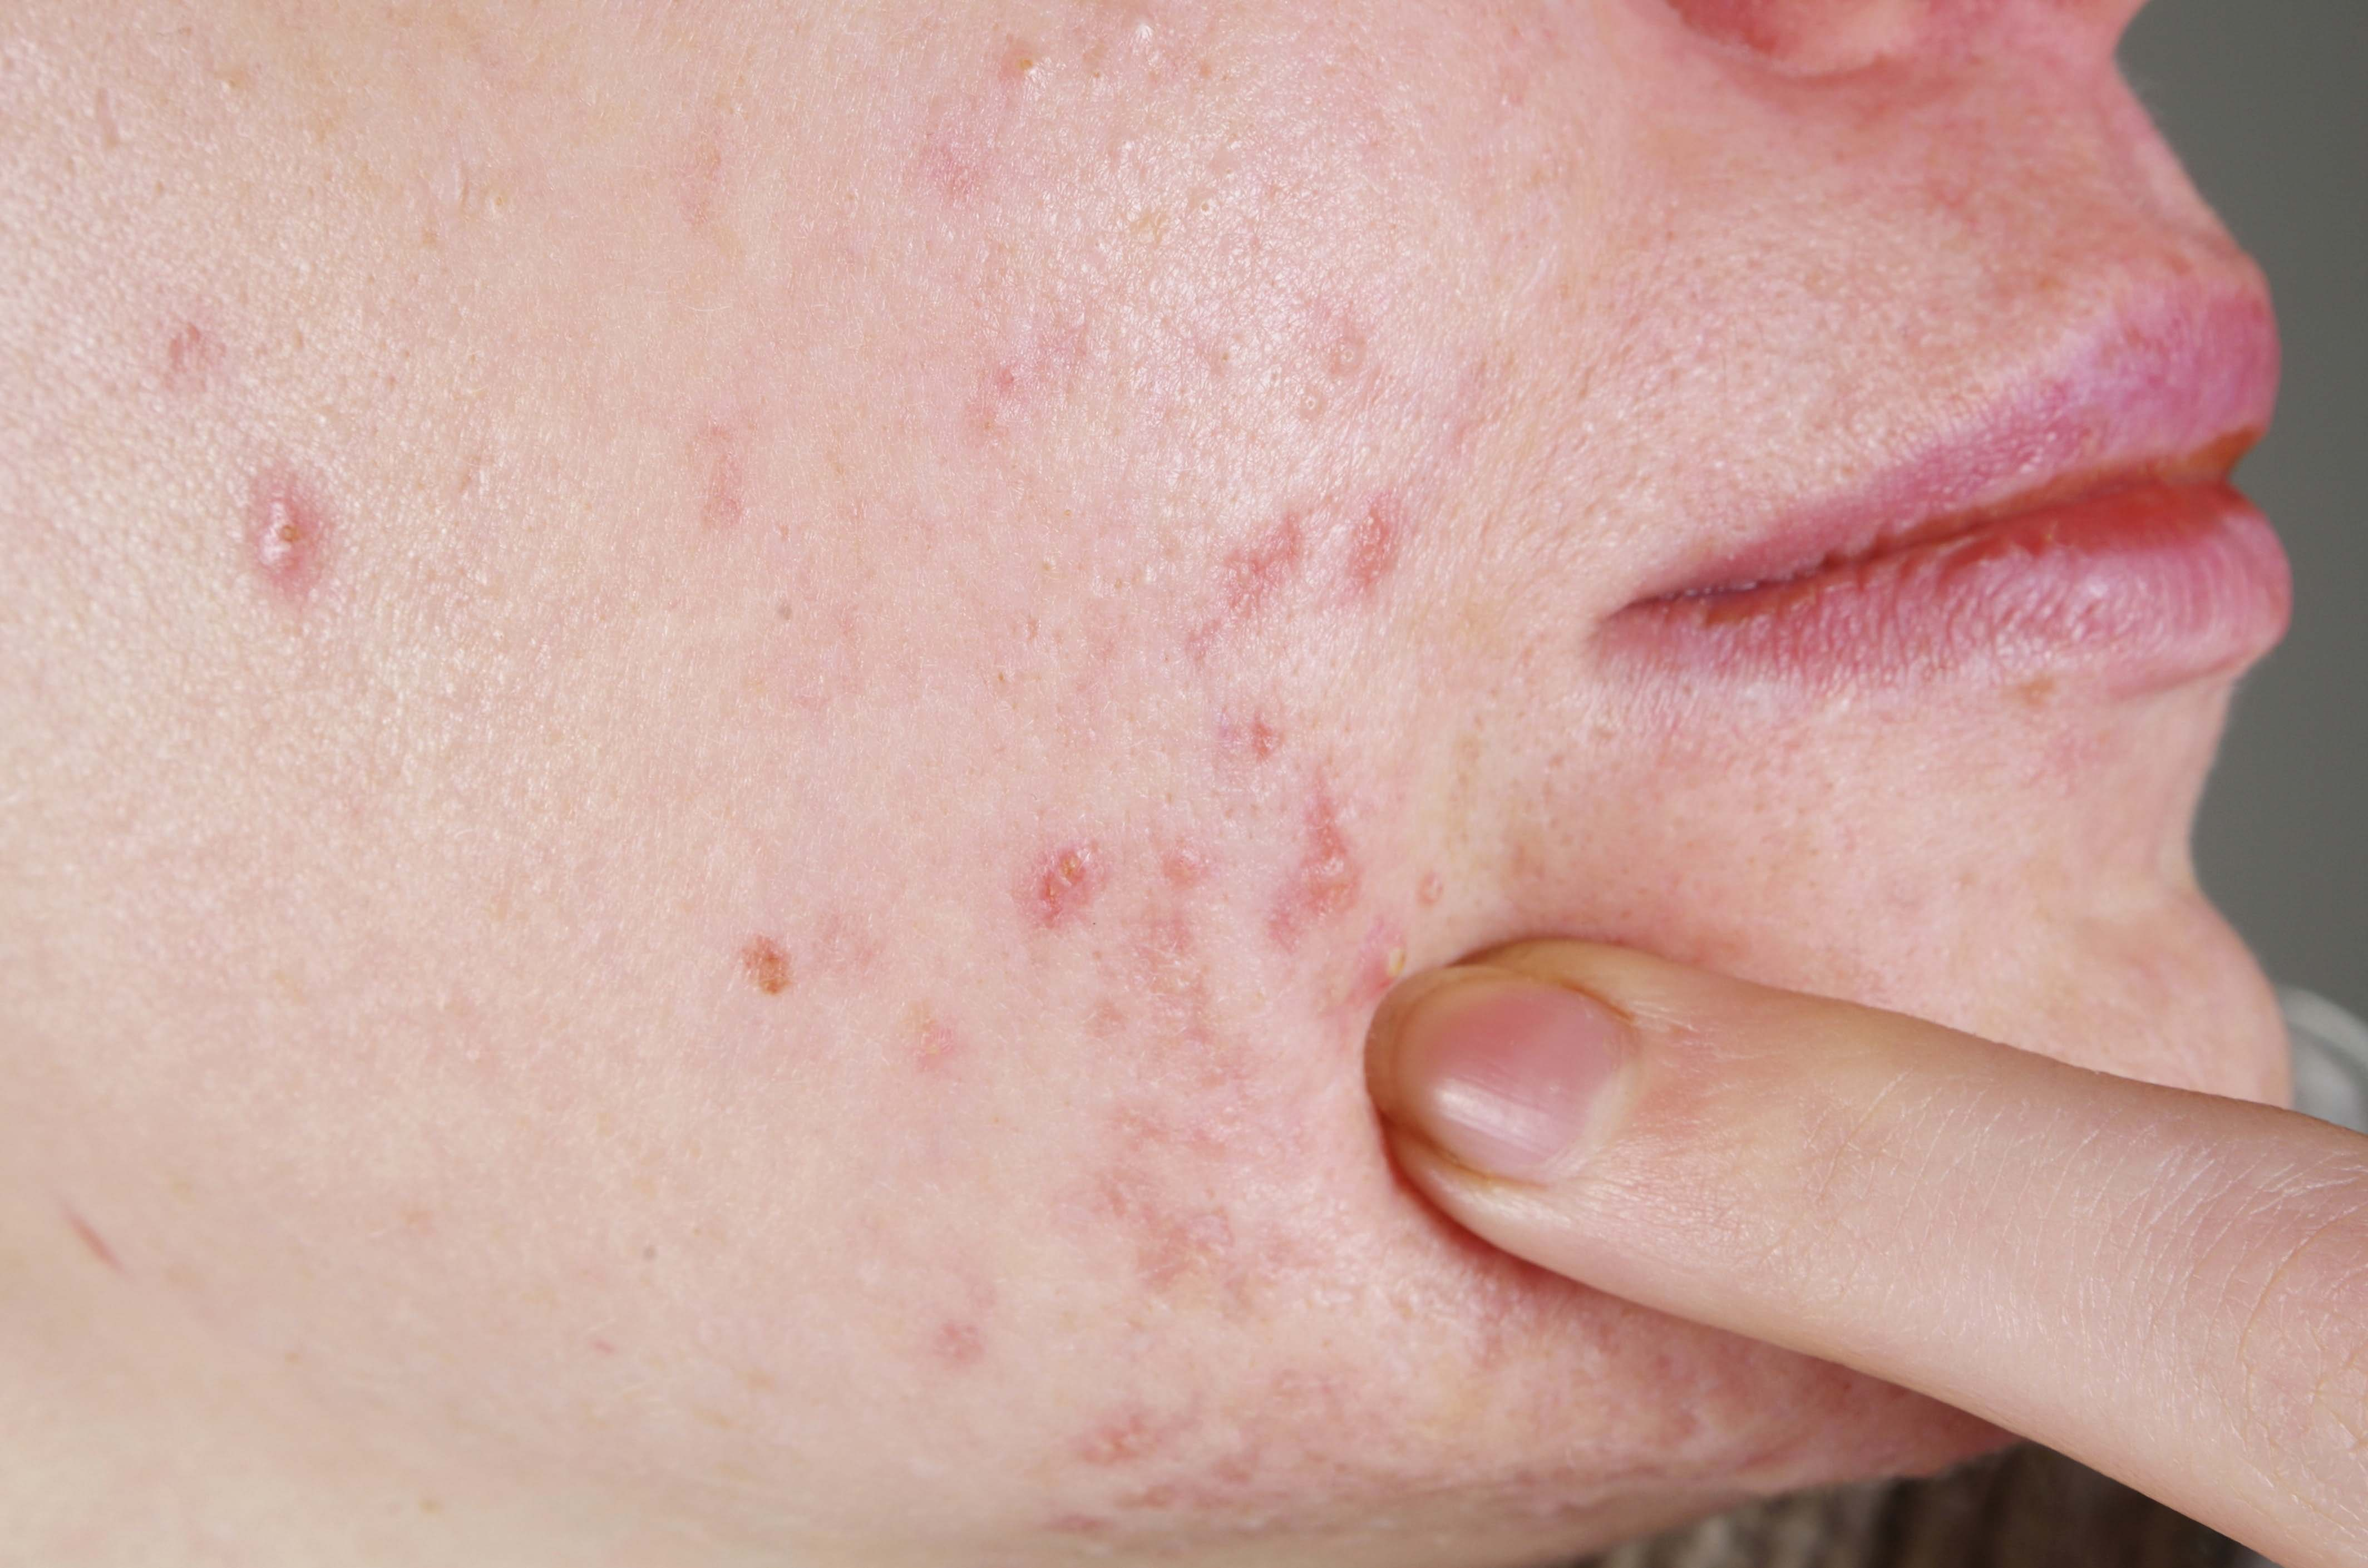 Image of Adult Acne on the Skin   Coping with Adult Acne   Harley Street dermatology Clinic